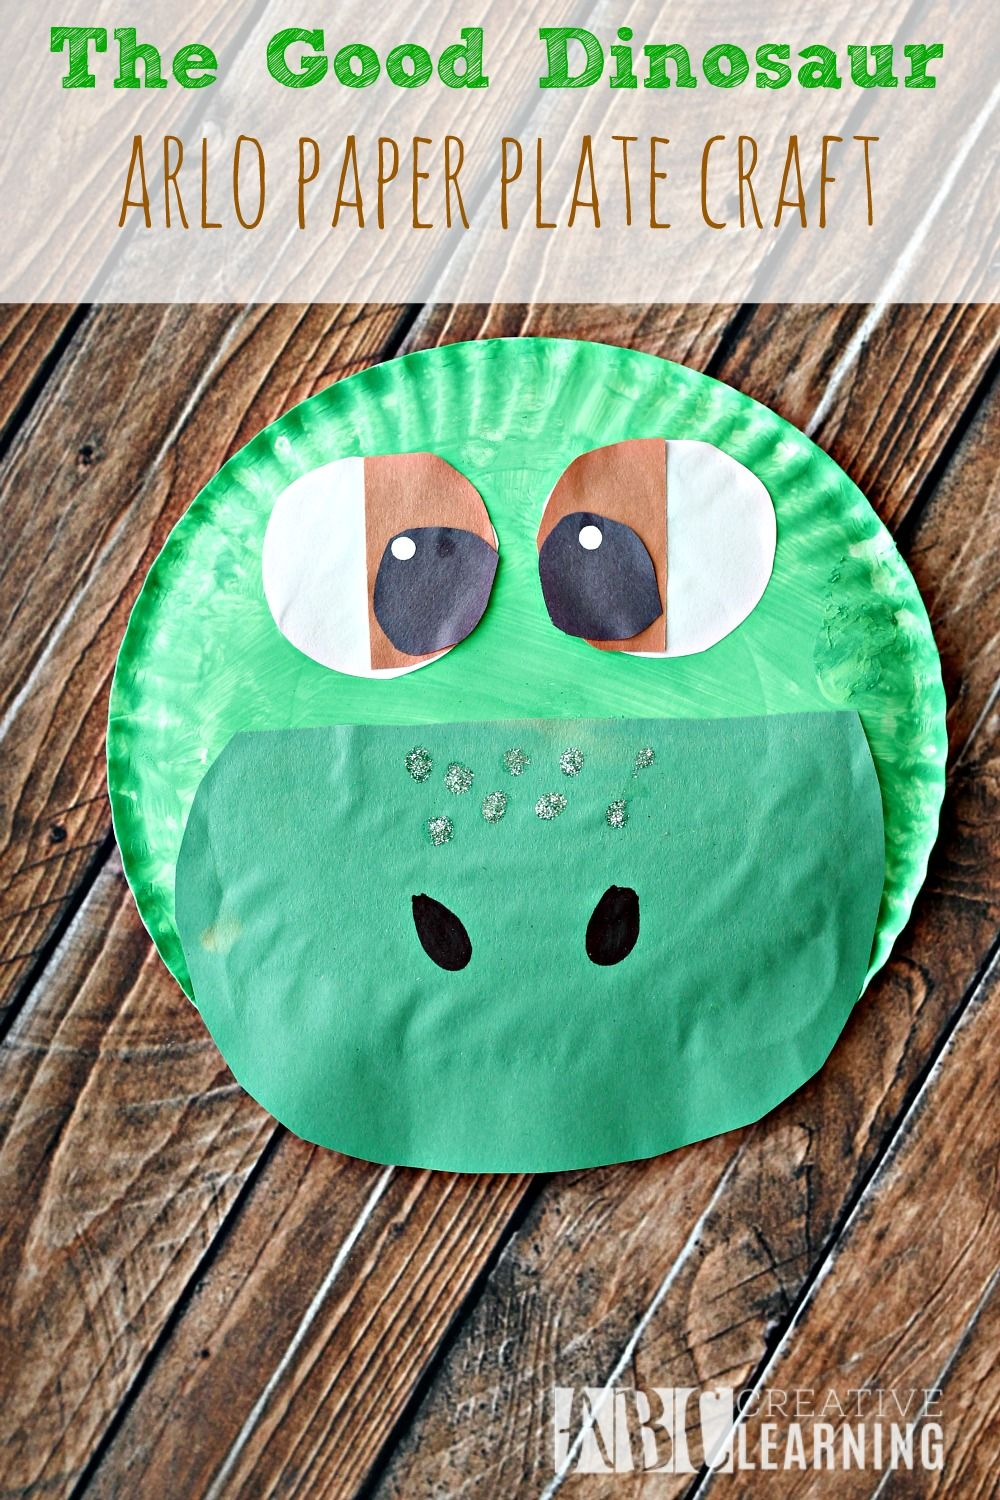 The Good Dinosaur Arlo Paper Plate Craft is perfect for the kiddos to celebrate the new Disney Pixar movie! - abccreativelearning.com & The Good Dinosaur Arlo Paper Plate Craft | Disney pixar movies ...